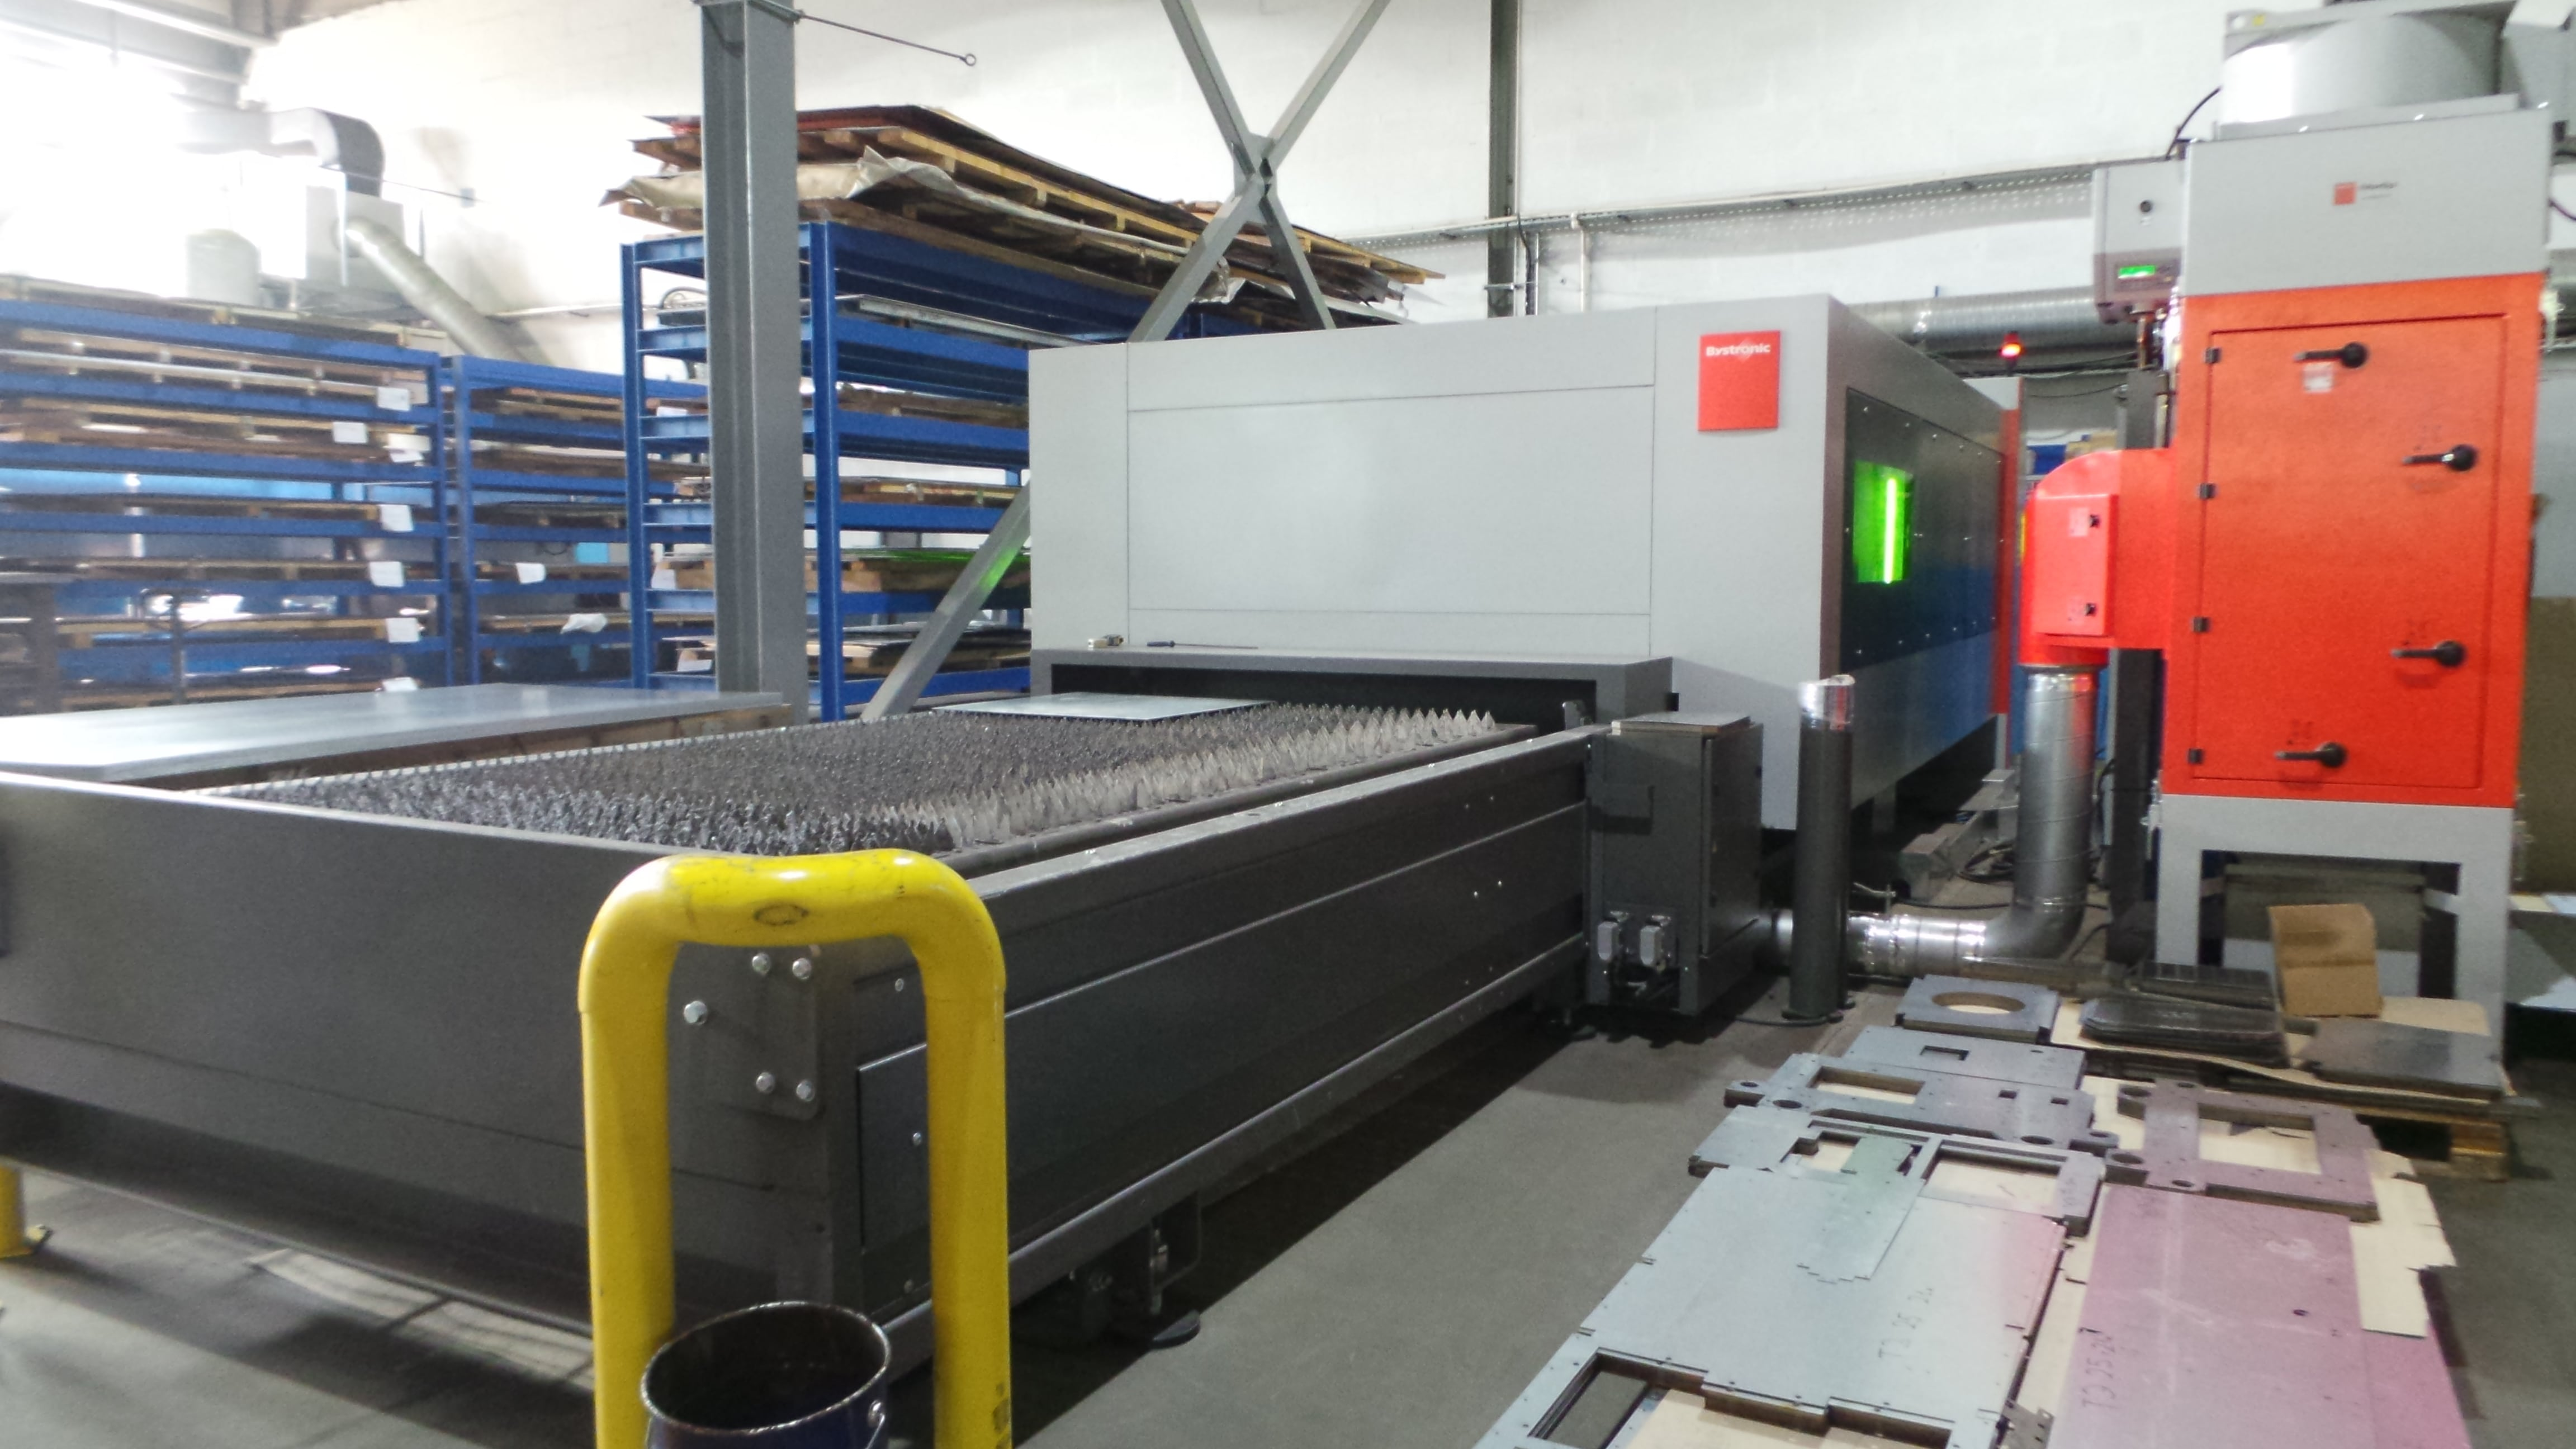 Bystronic BySmart 3015 Fiber laser cutting machine - Exapro